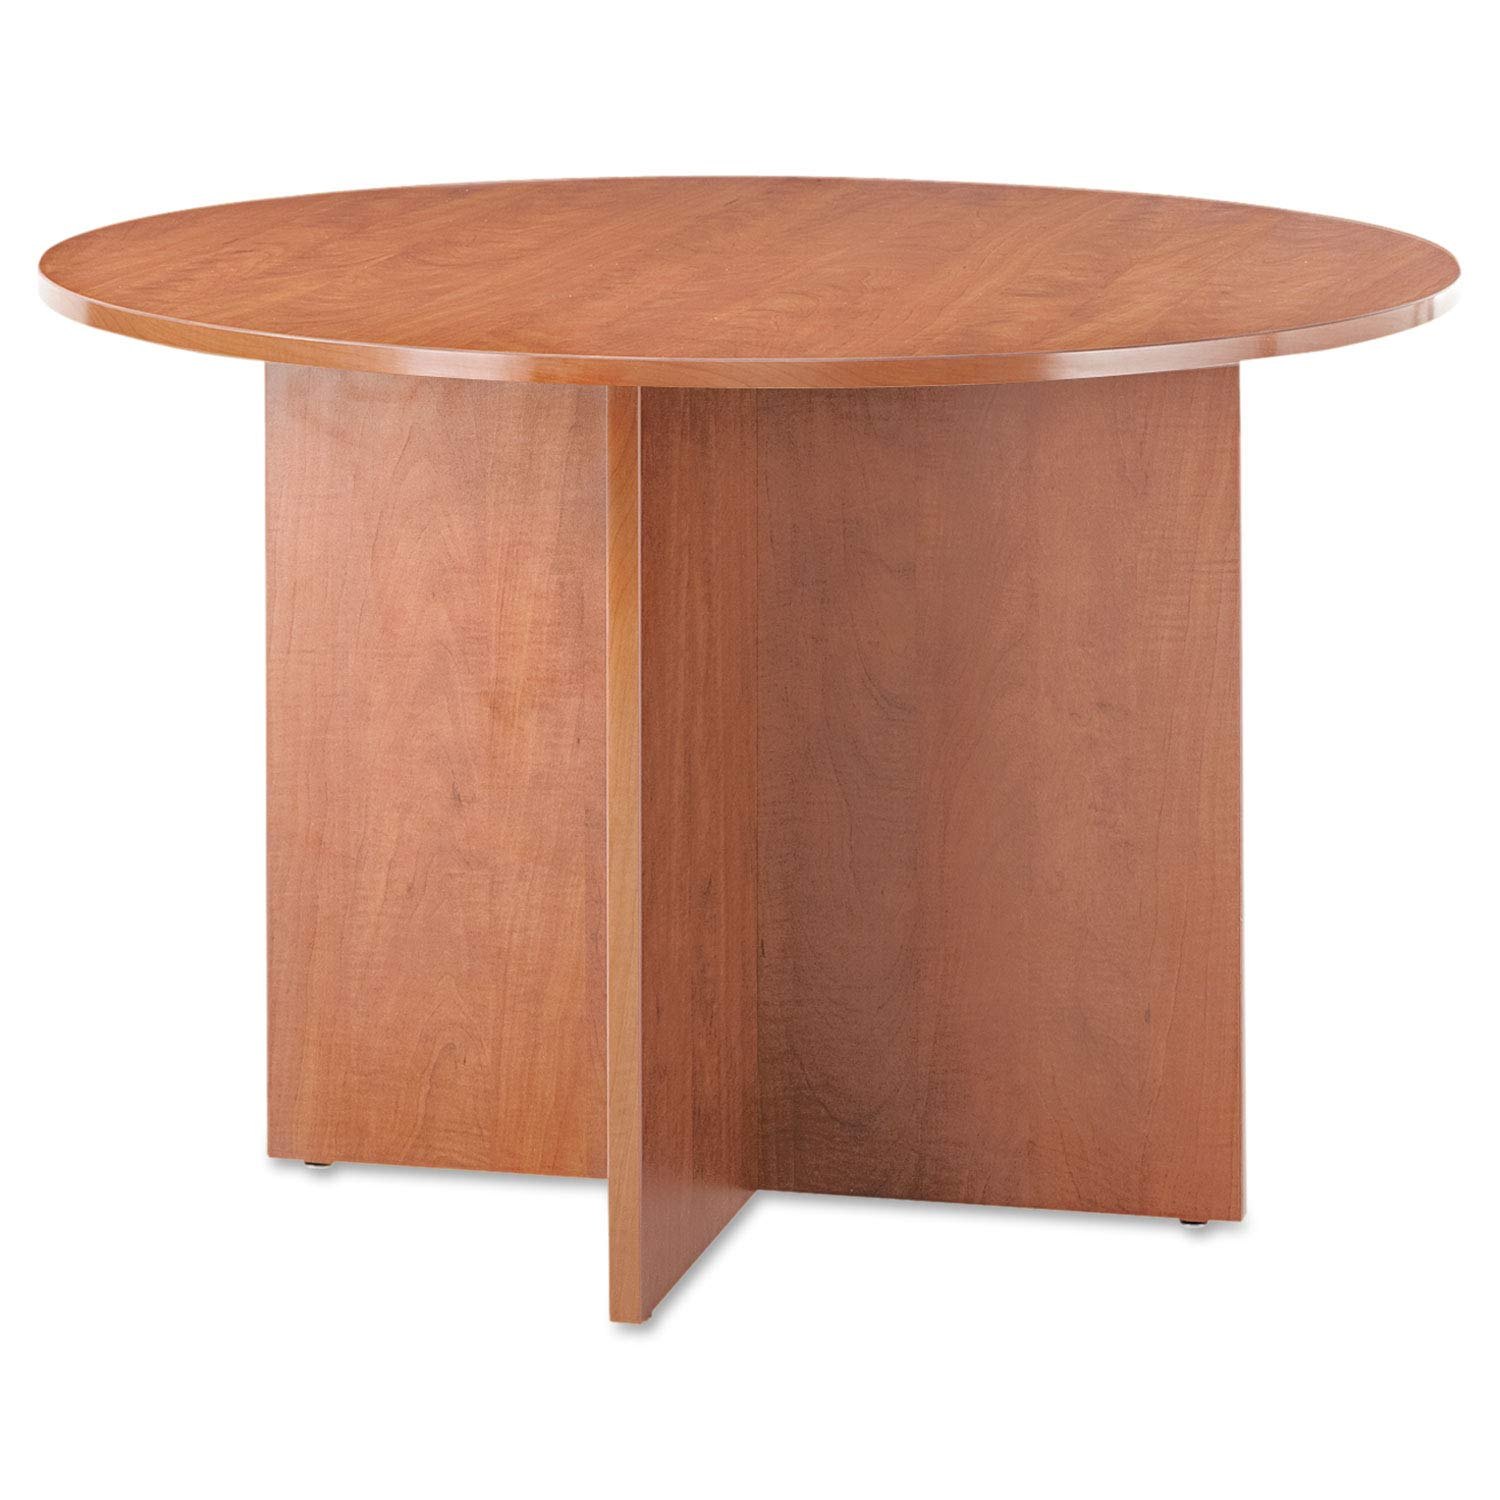 Alera VA7142MC Alera Valencia Round Conference Table w/Legs, 29 1/2h x 42 Dia, Medium Cherry